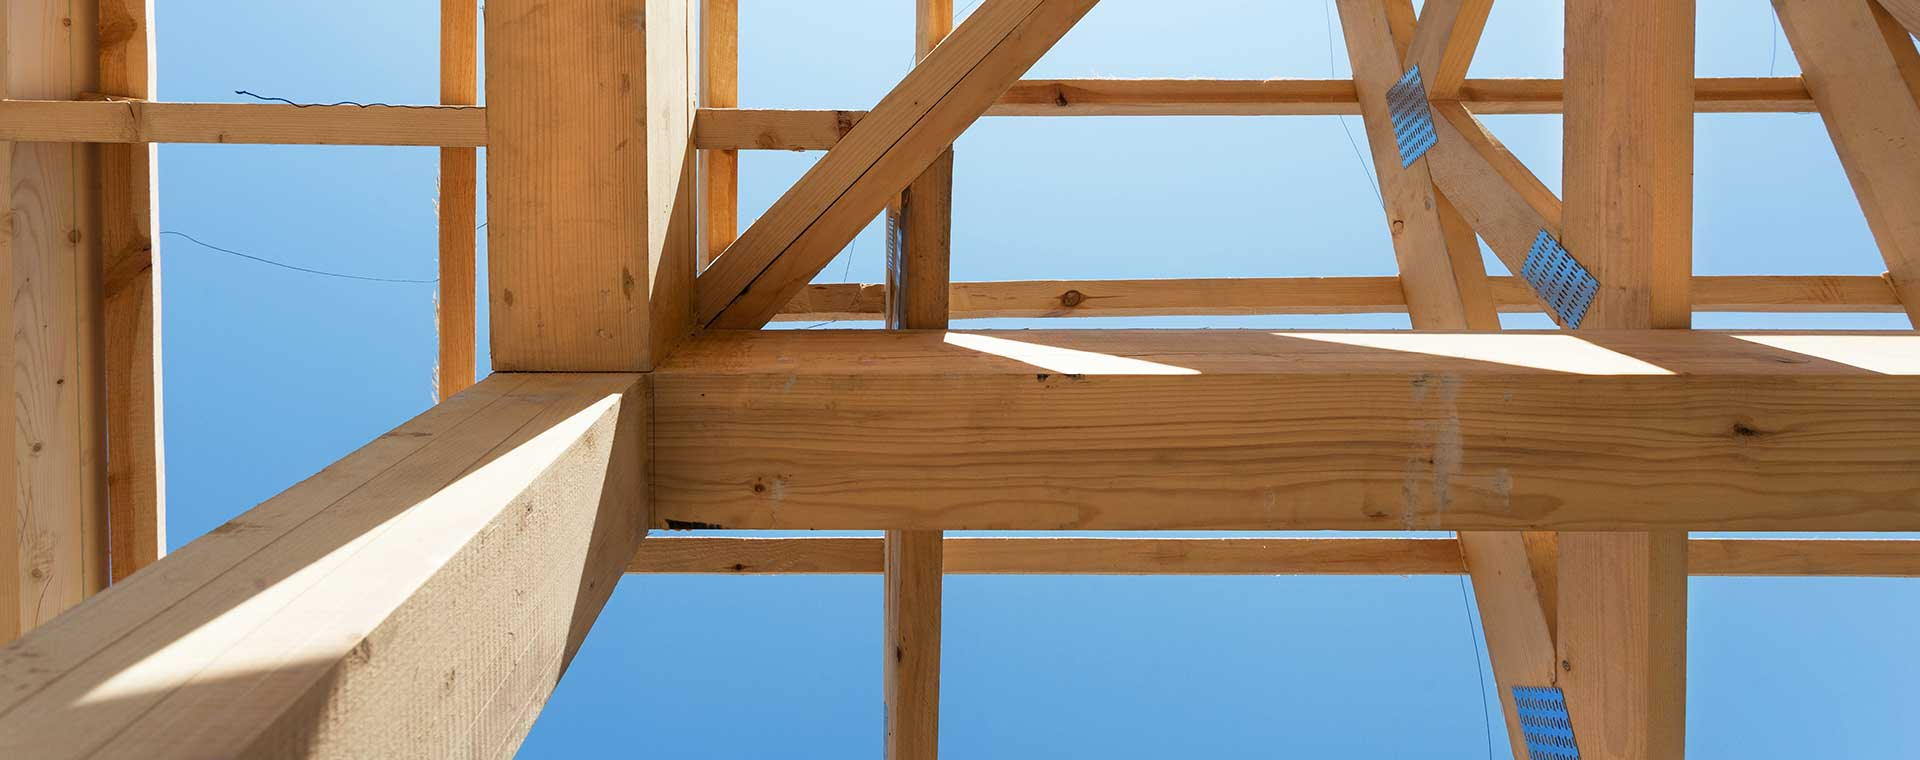 Quality Timber Frame Homes slider image